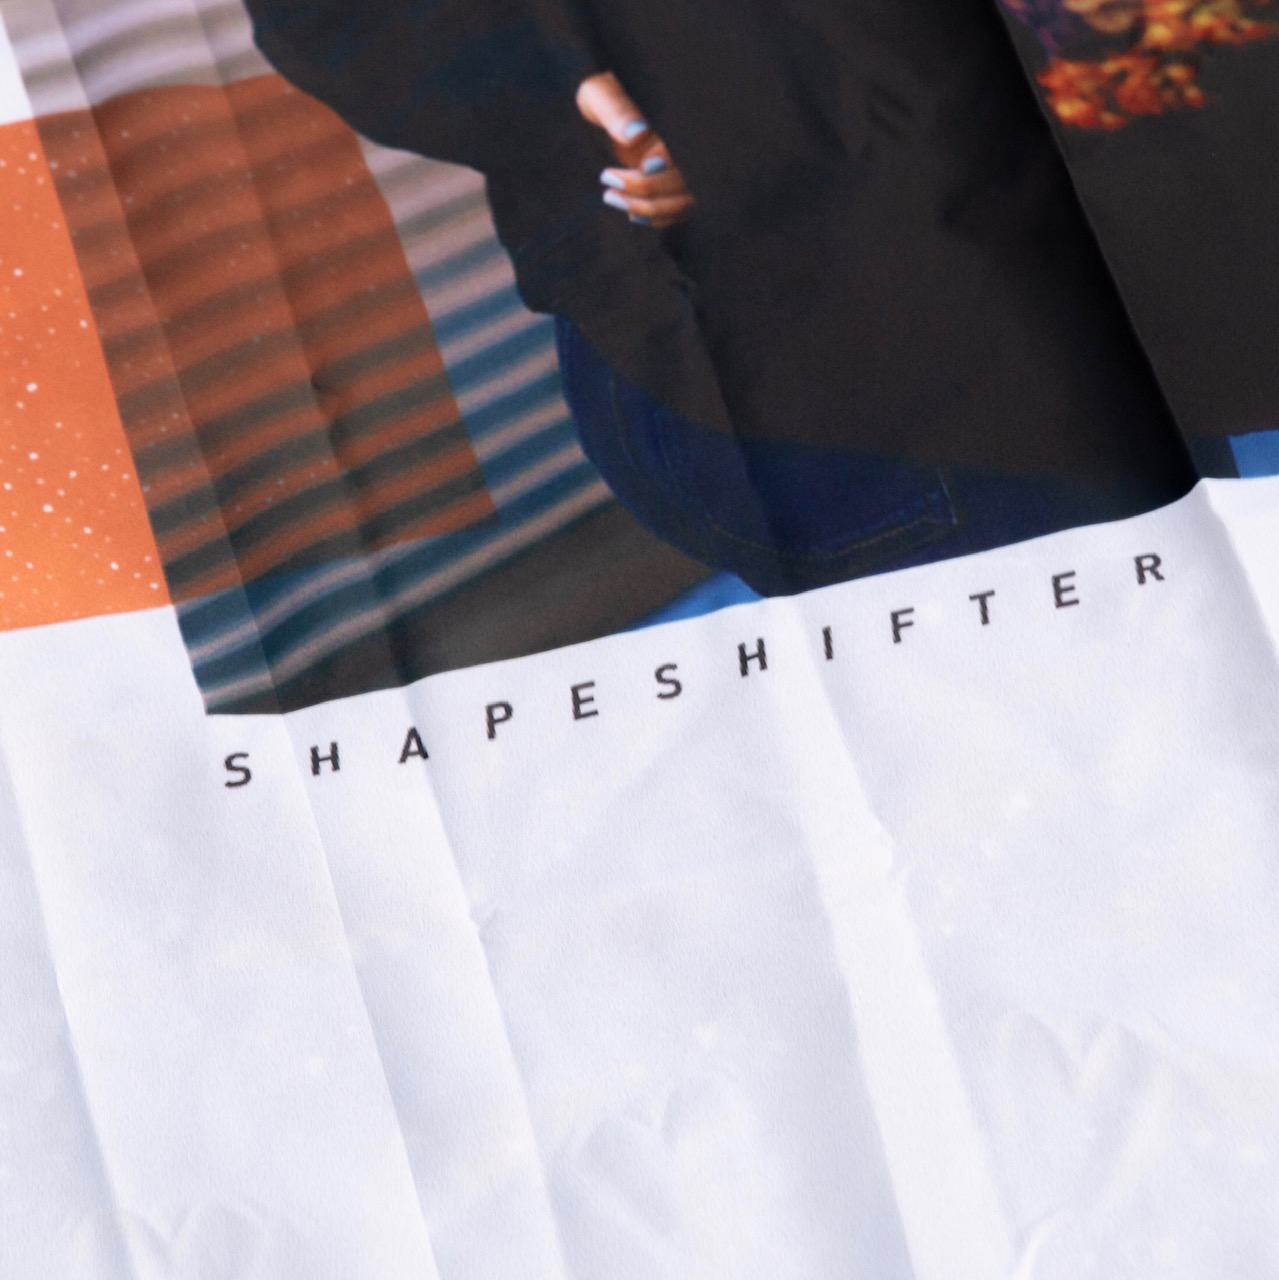 Shapeshifter Flag